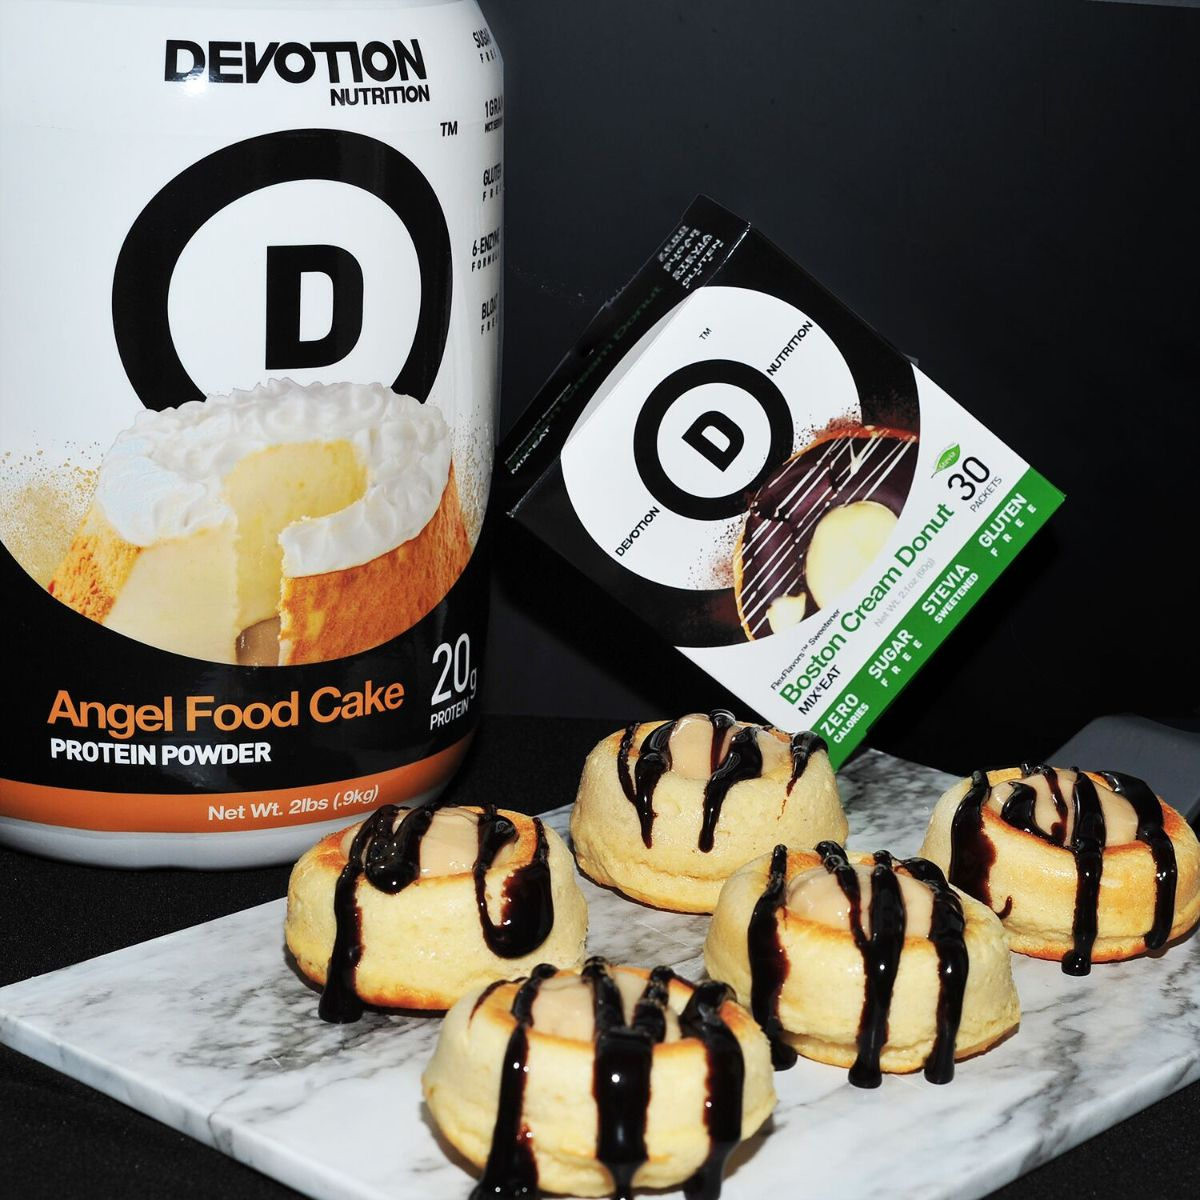 What Kind Of Nut Has A Hole >> Devotion Nutrition What Kind Of Nut Has A Hole Milled